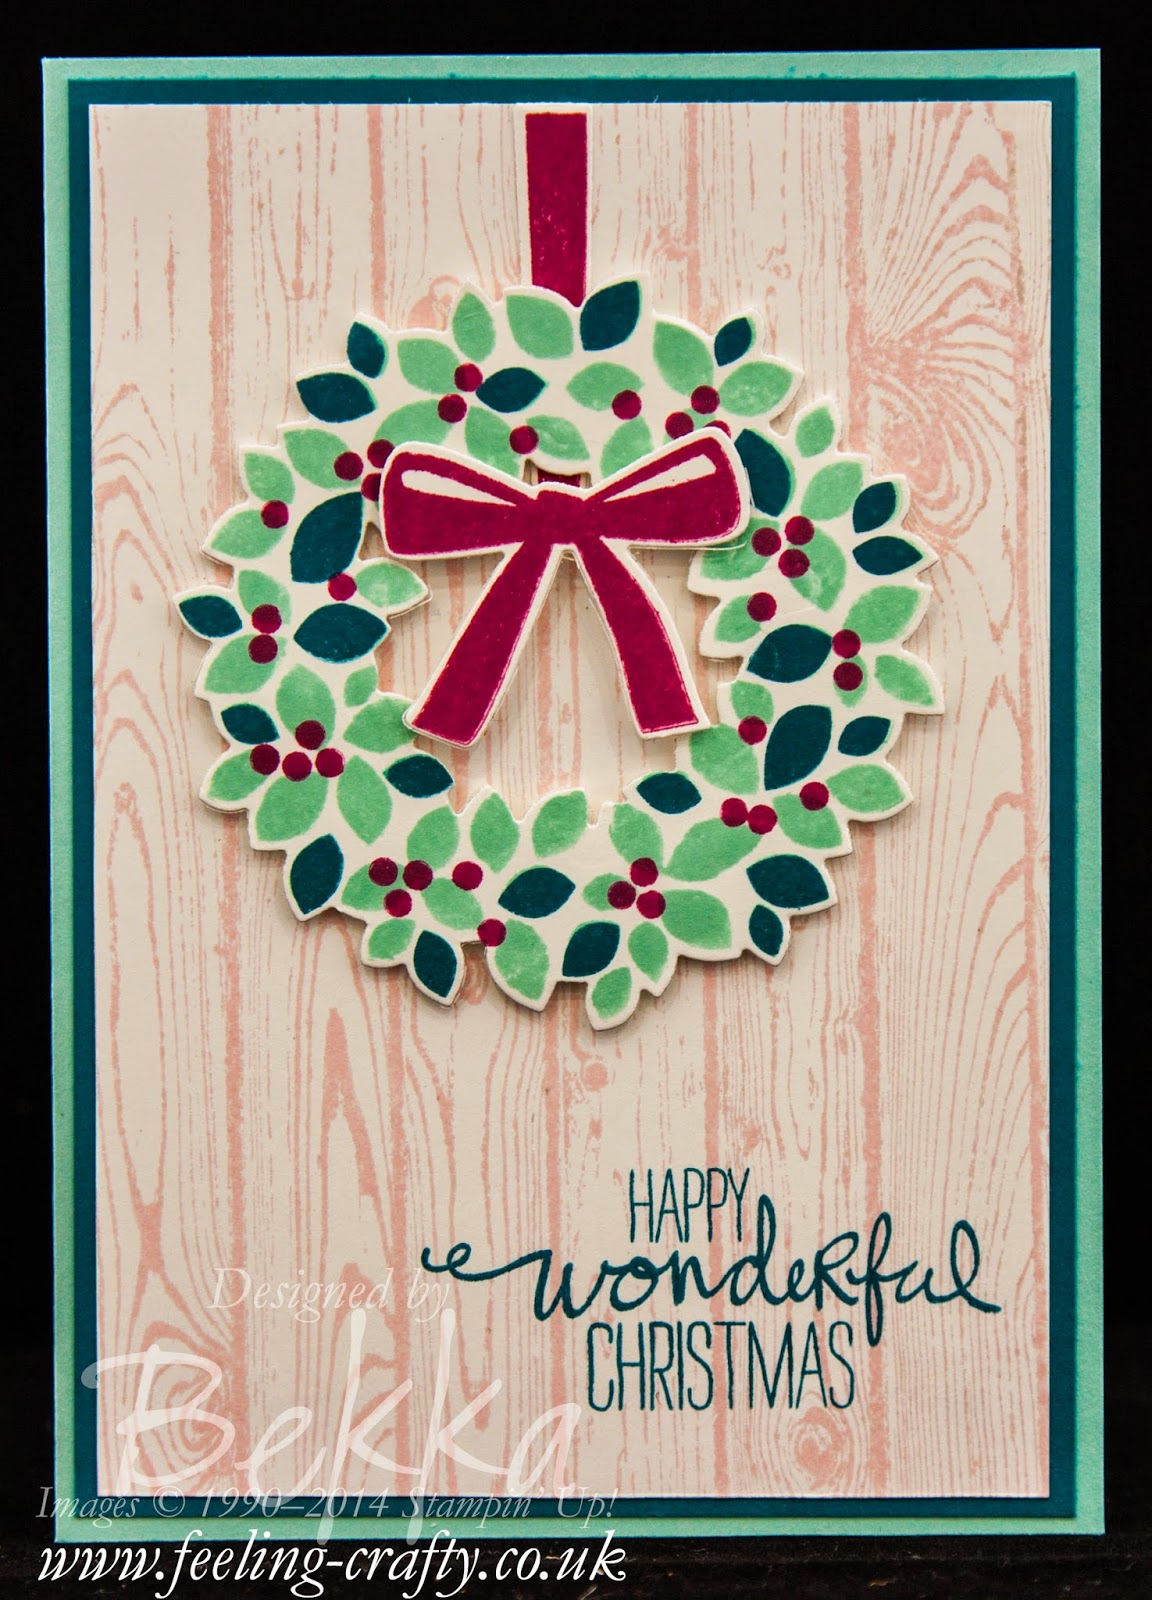 Wondrous Wreath Christmas Card by Stampin' Up! UK Independent Demonstrator Bekka - check out this blog for lots of ideas with this stamp set